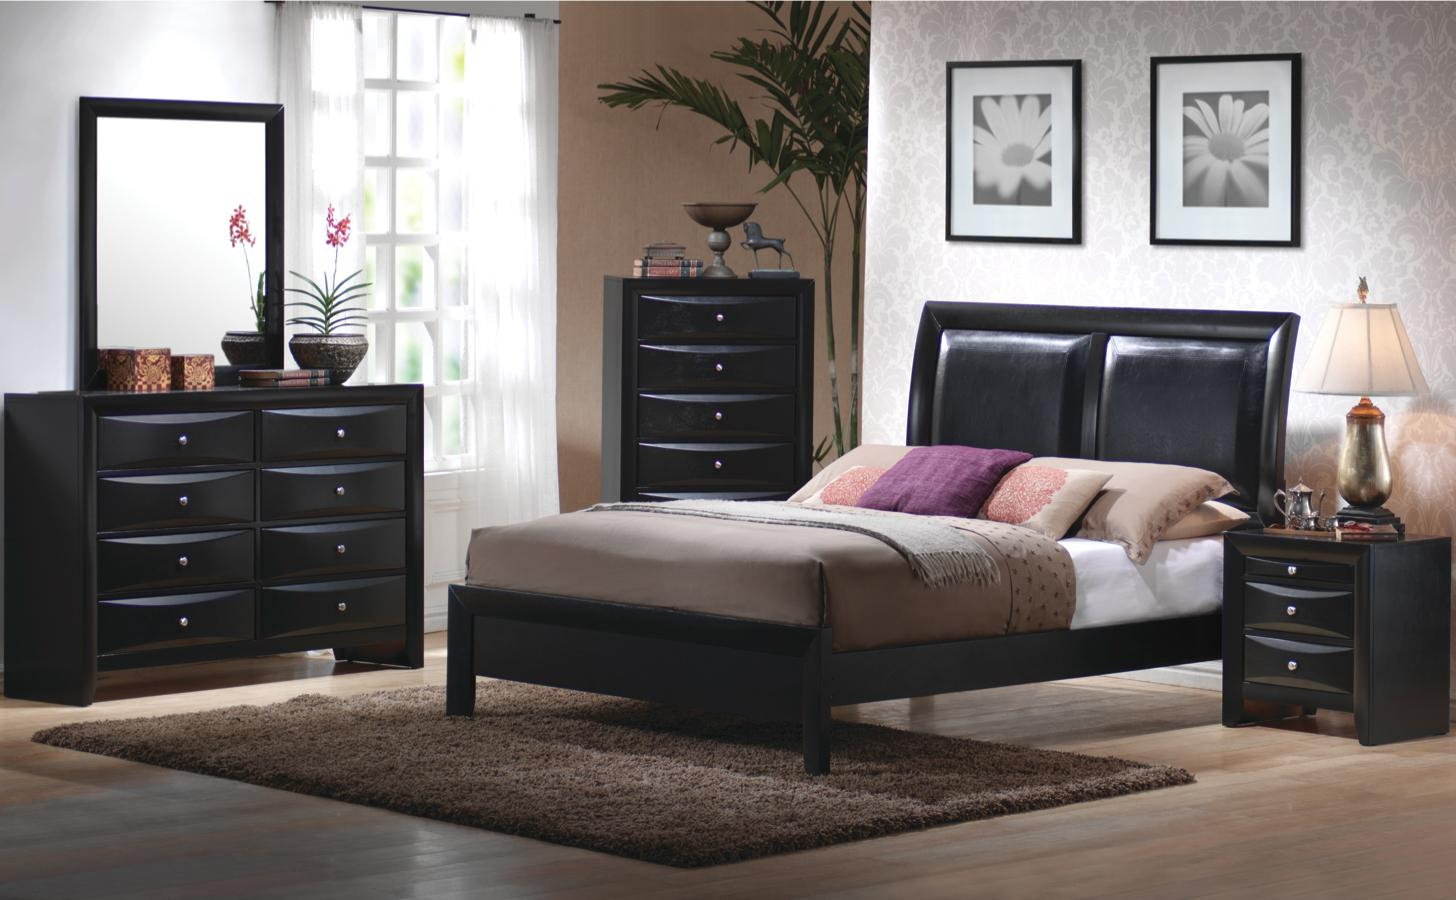 4 PC Briana King Size Bedroom Collection Furniture Stores